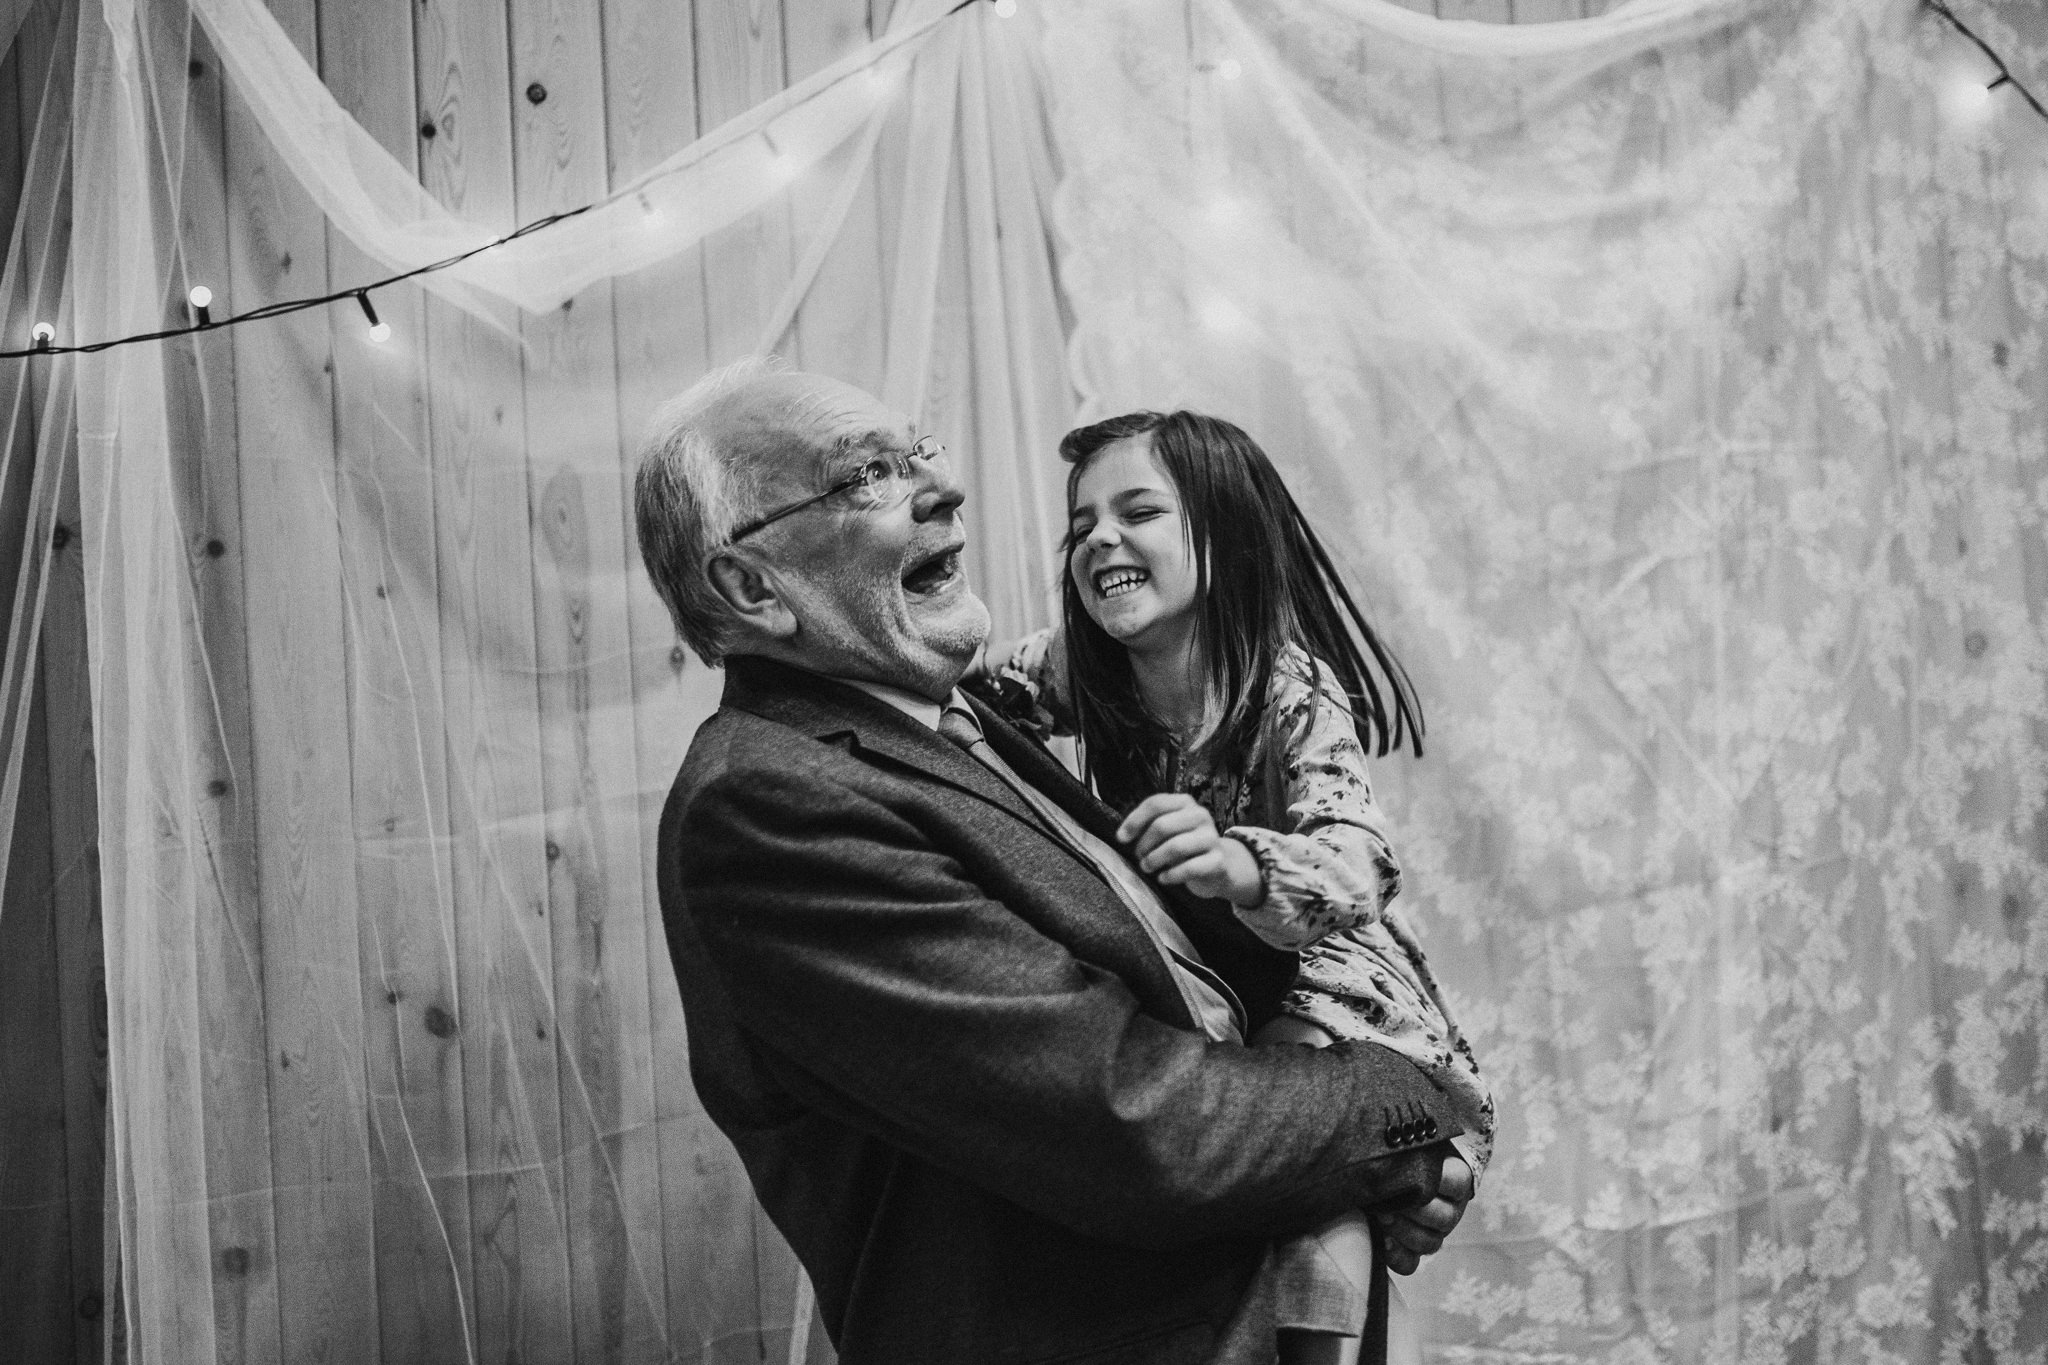 An old man is holding a little girl and they are laughing with each other.